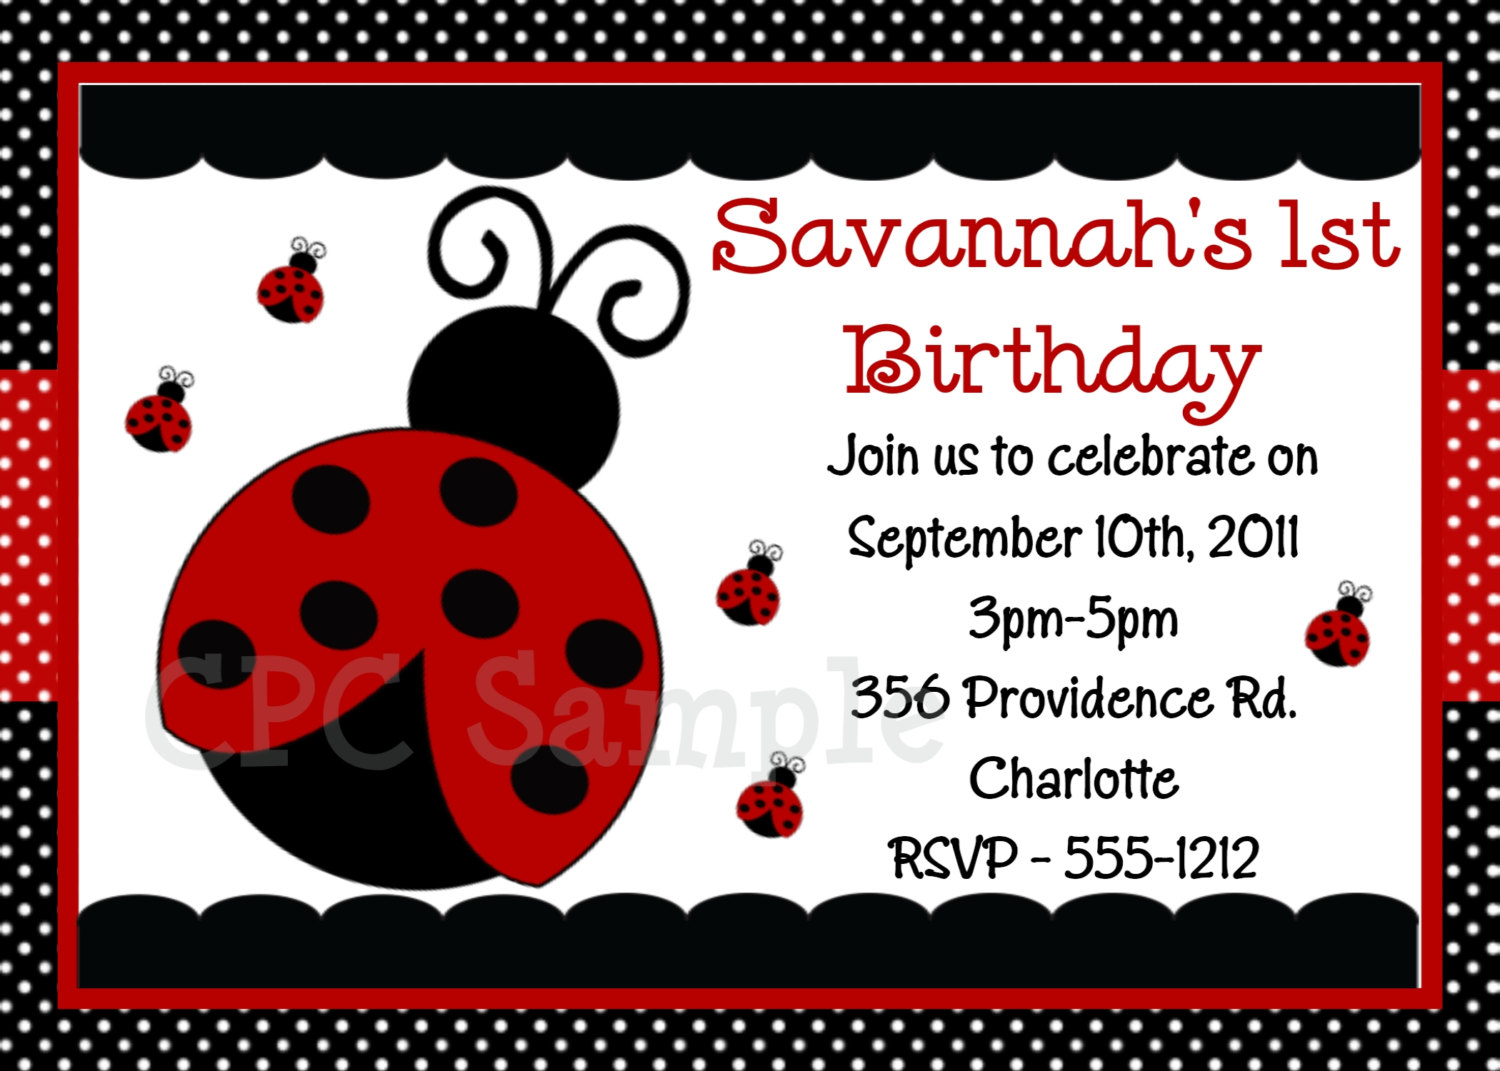 free printable ladybug birthday cards ; ladybug-birthday-party-invitations-stunning-Party-invitations-as-your-best-friendship-appreciation-to-your-best-friends-4